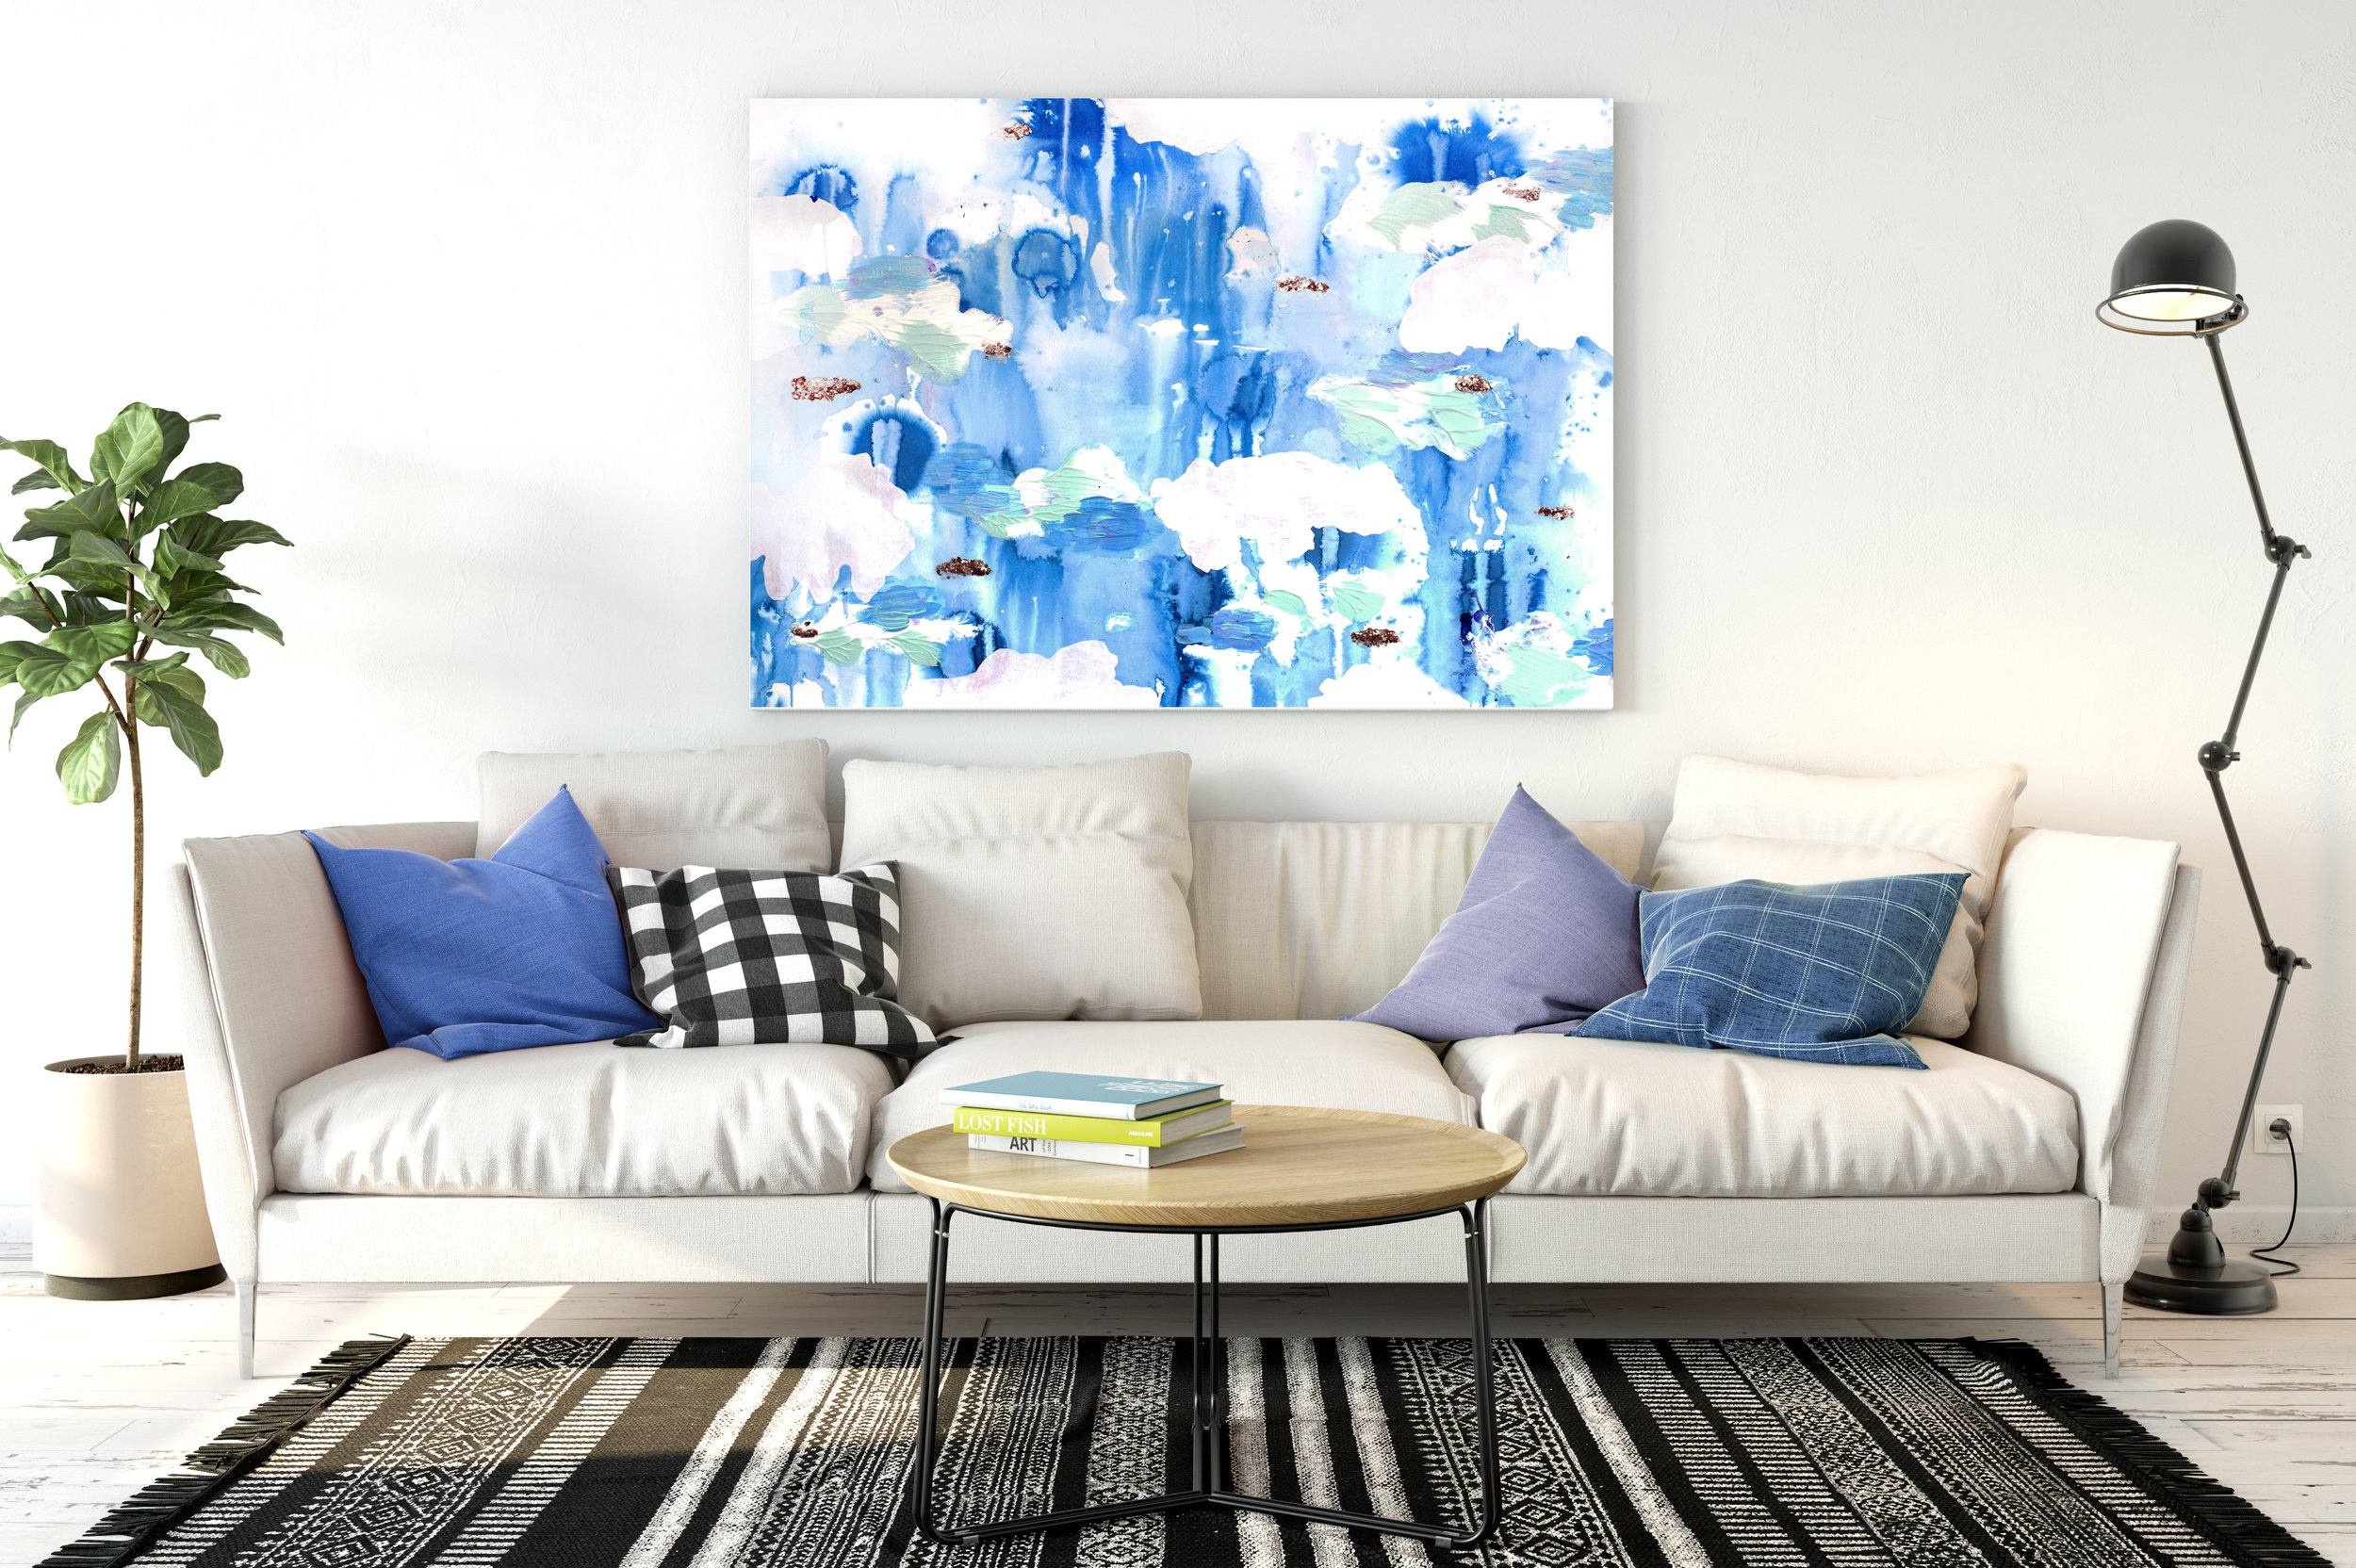 Color therapy - for boring walls! Available on my pop up gallery shop!